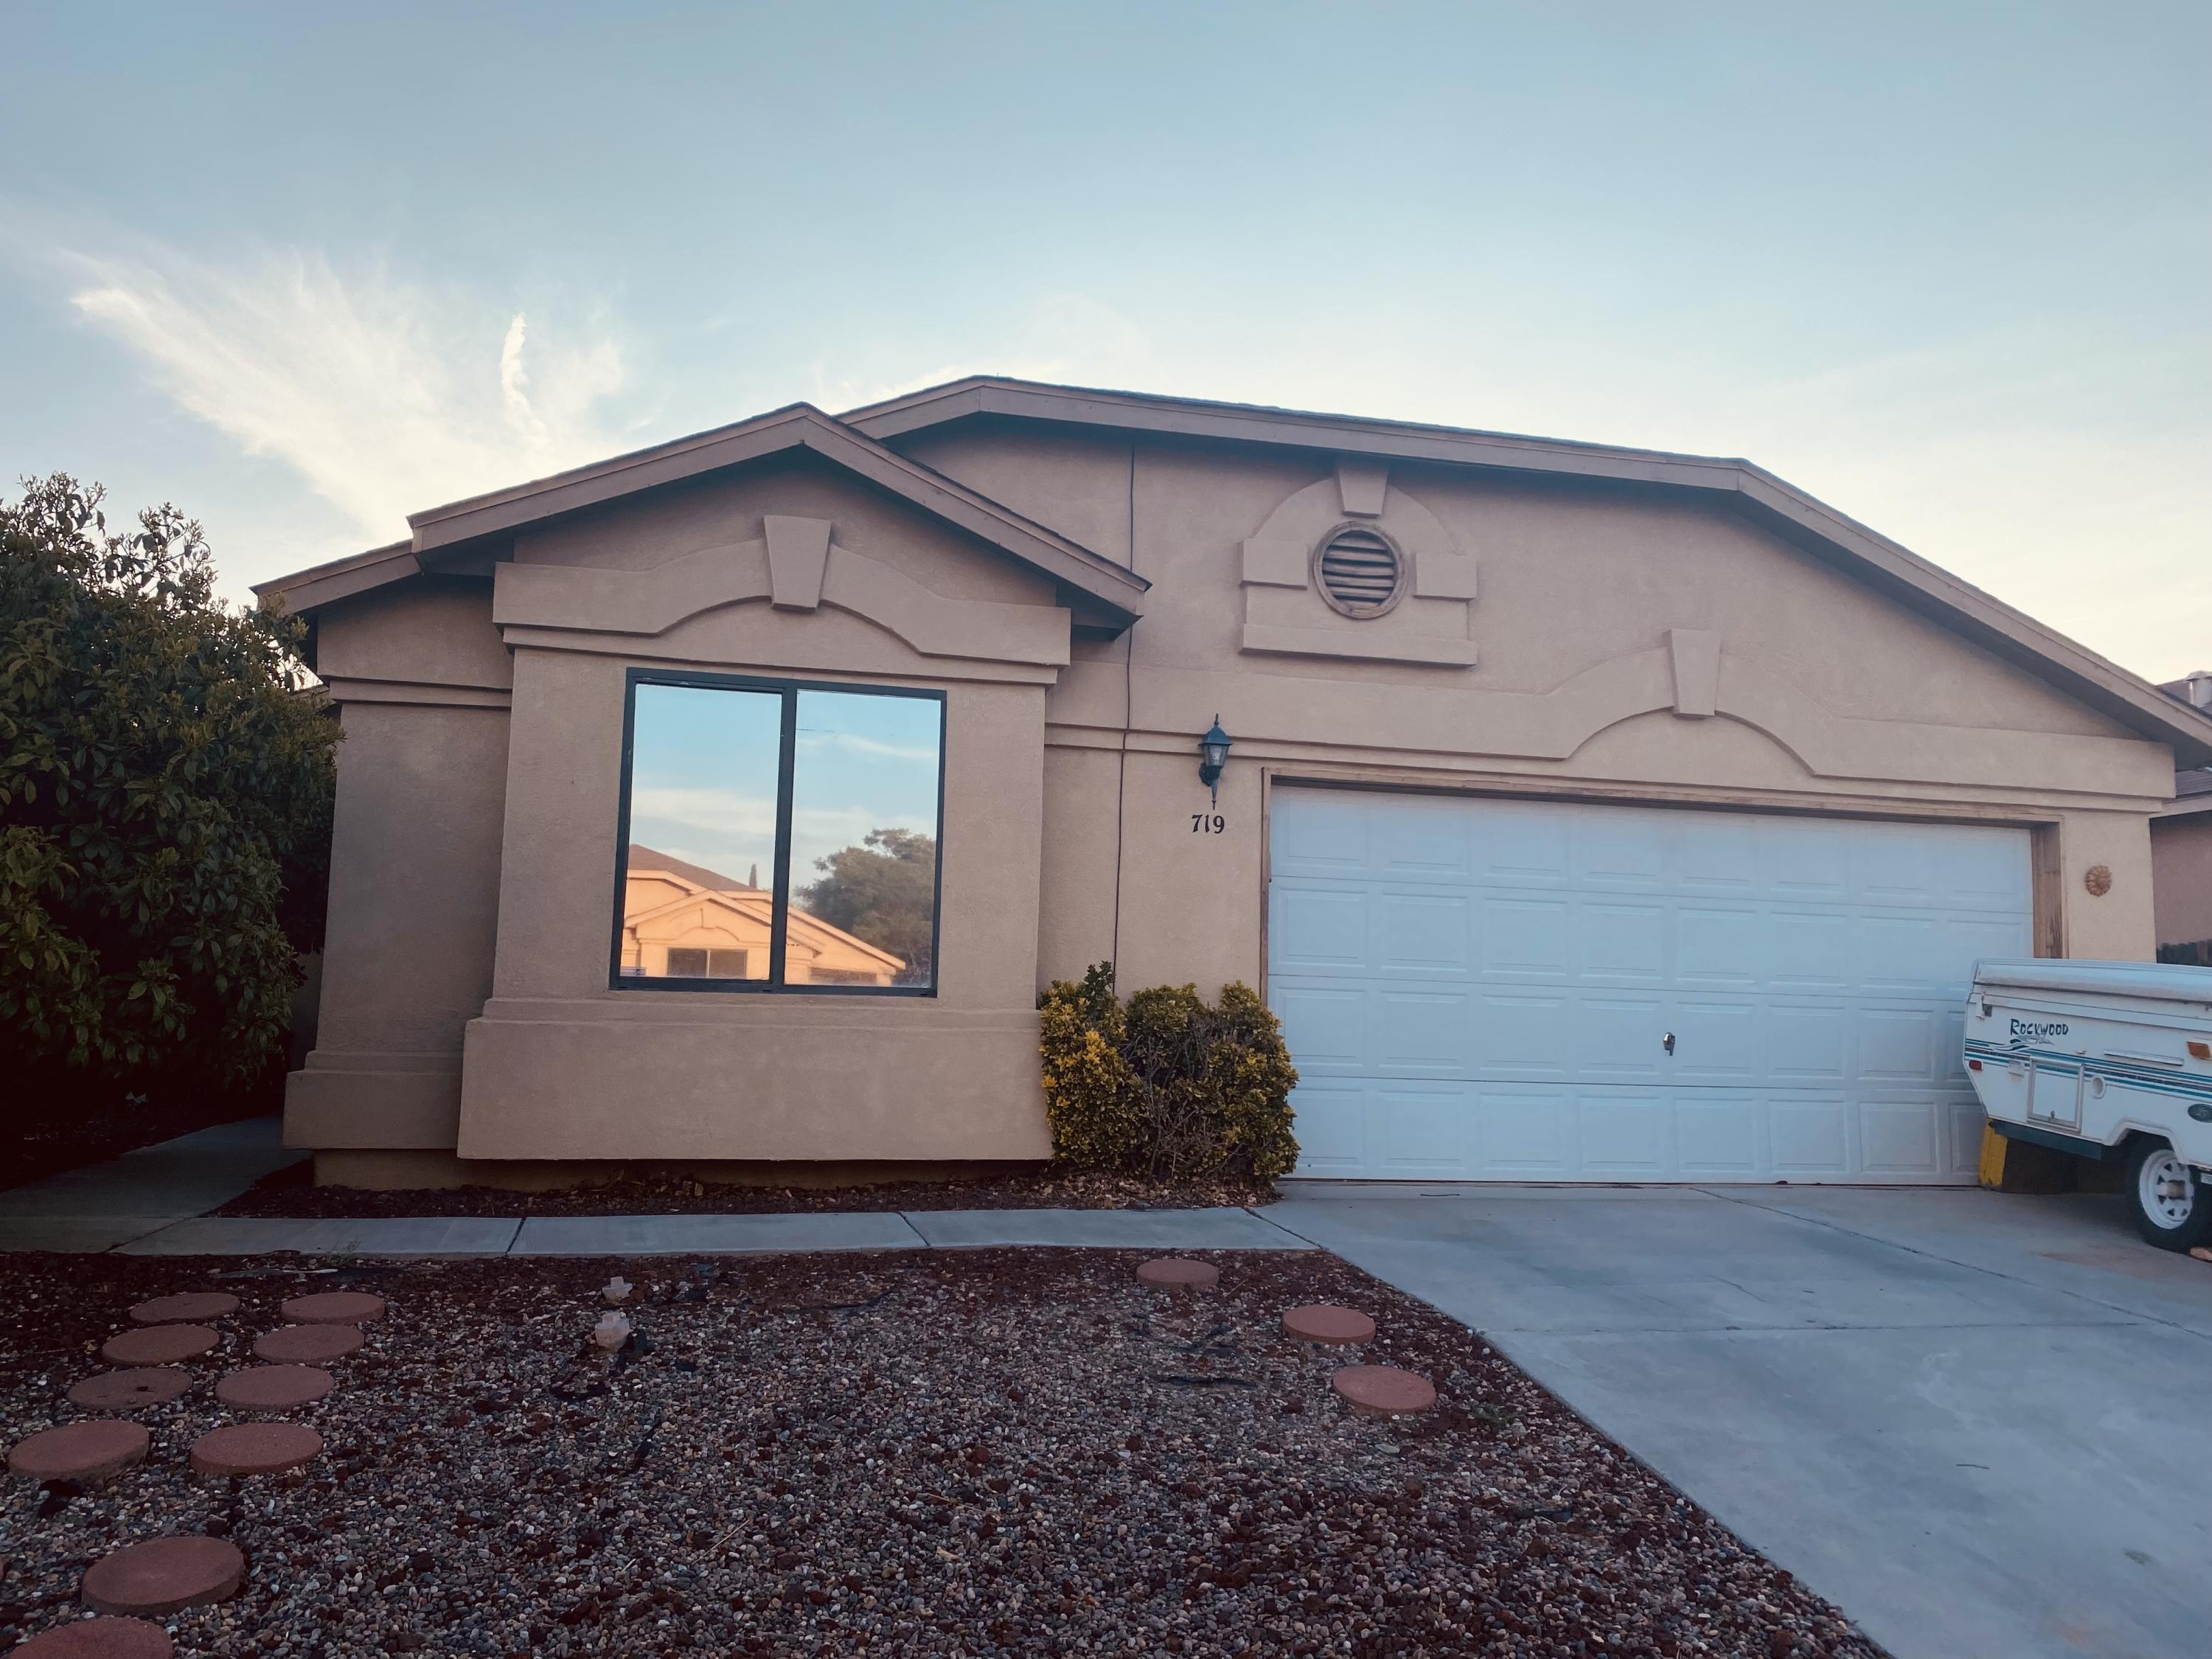 This home is move-in ready! It is a beautiful 3 bedroom 2 full bath single story. The home has been well taken care of and will go fast! Schedule your appointment to view it today.